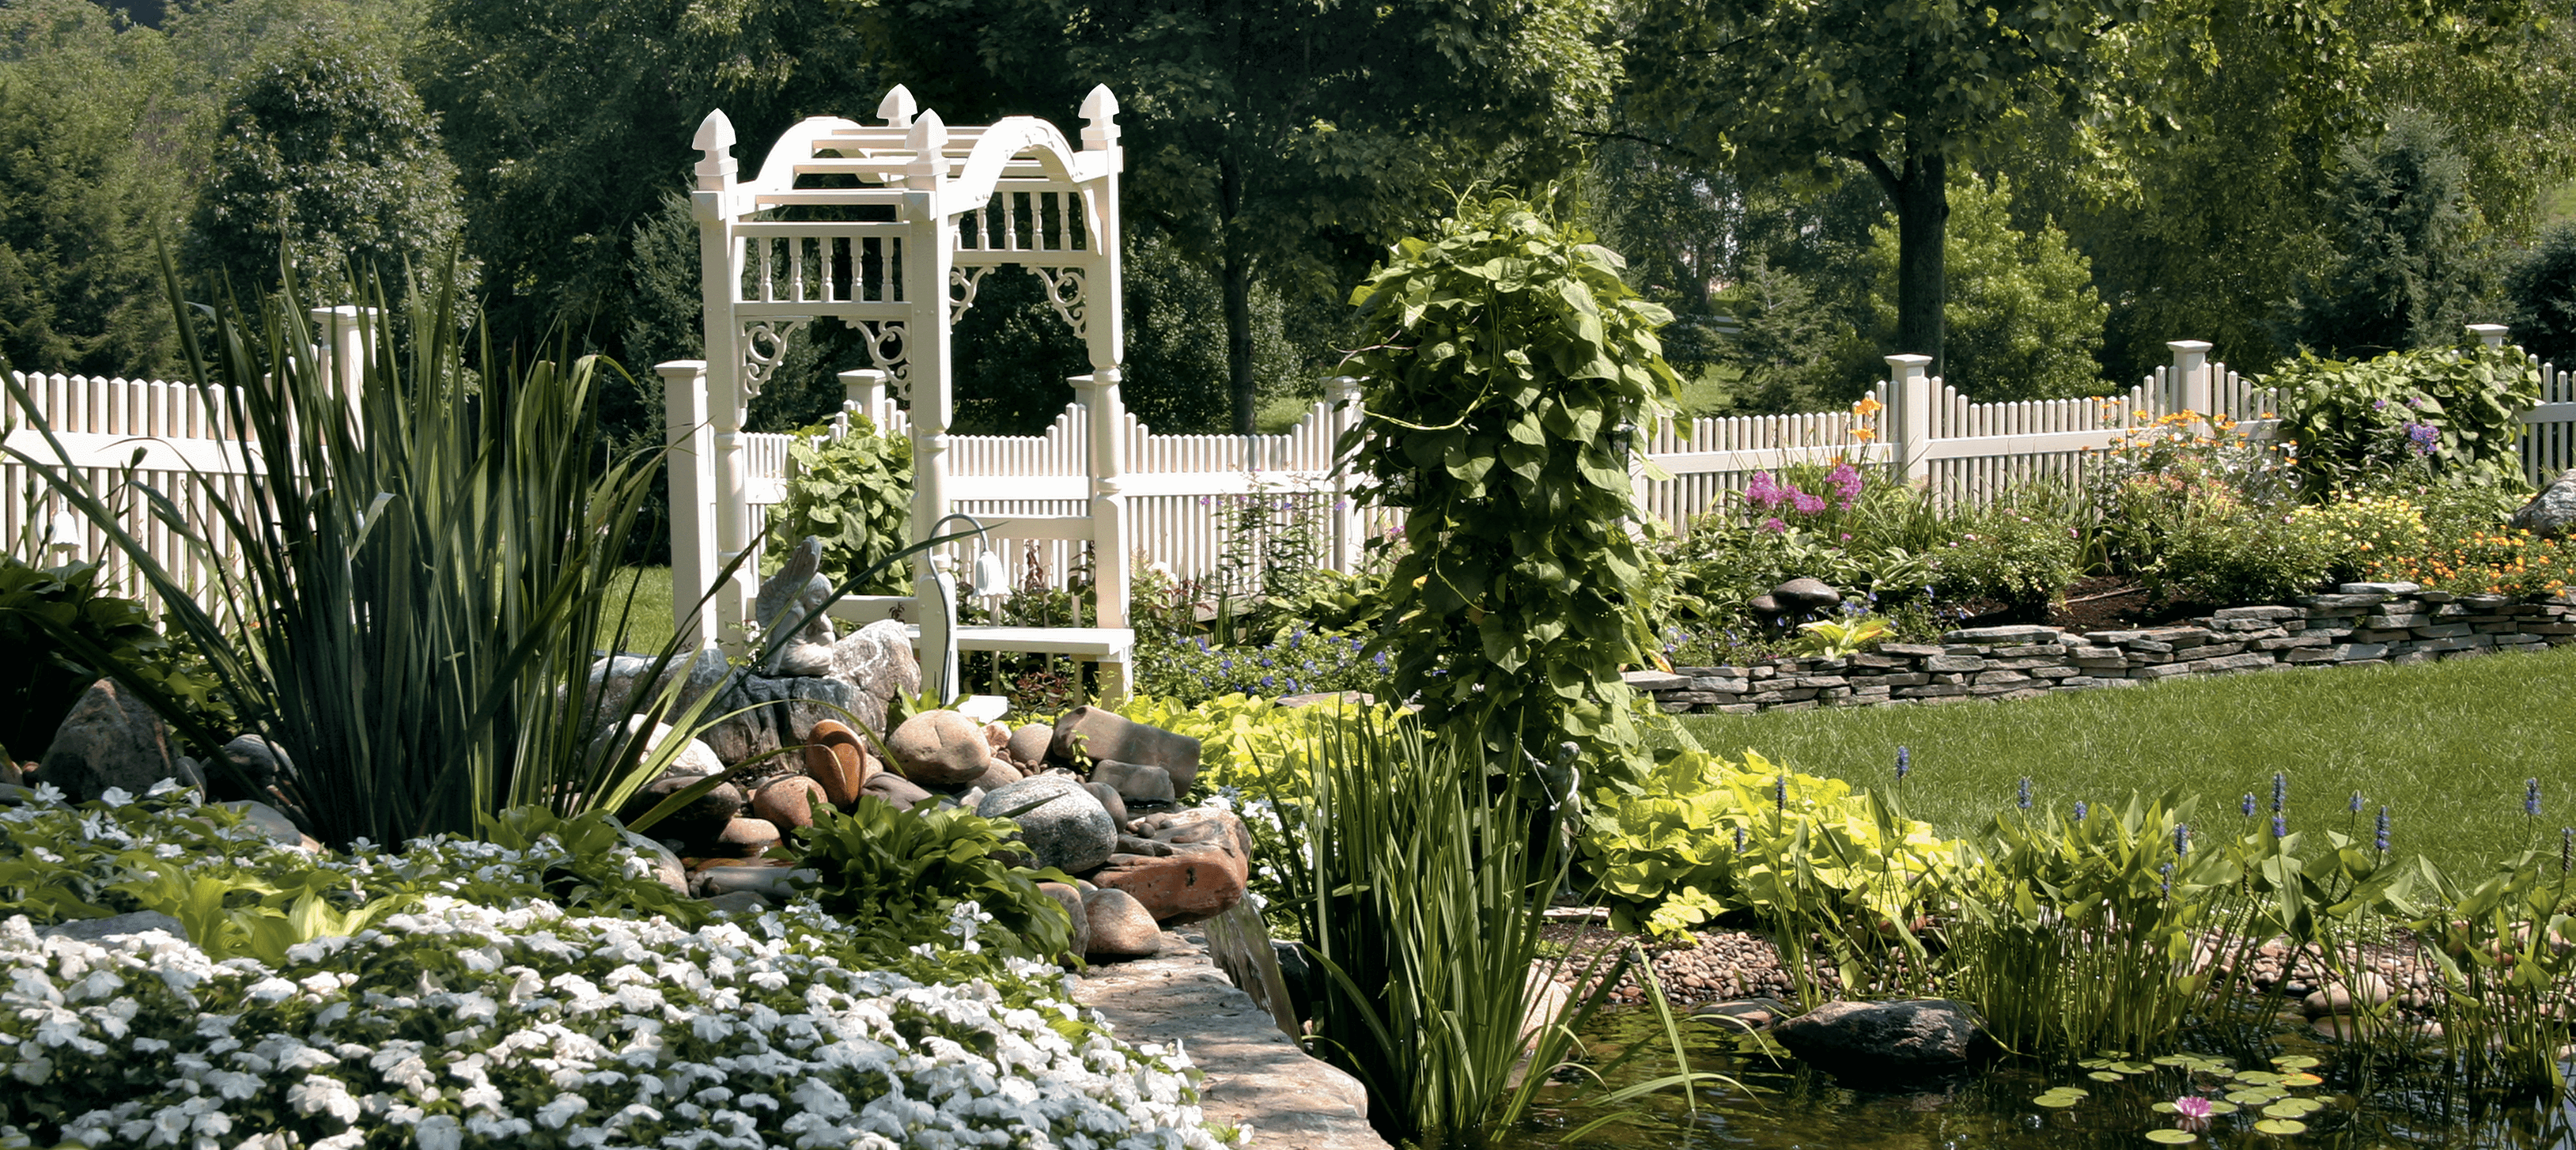 7 Ways to Create an At-Home Garden Getaway